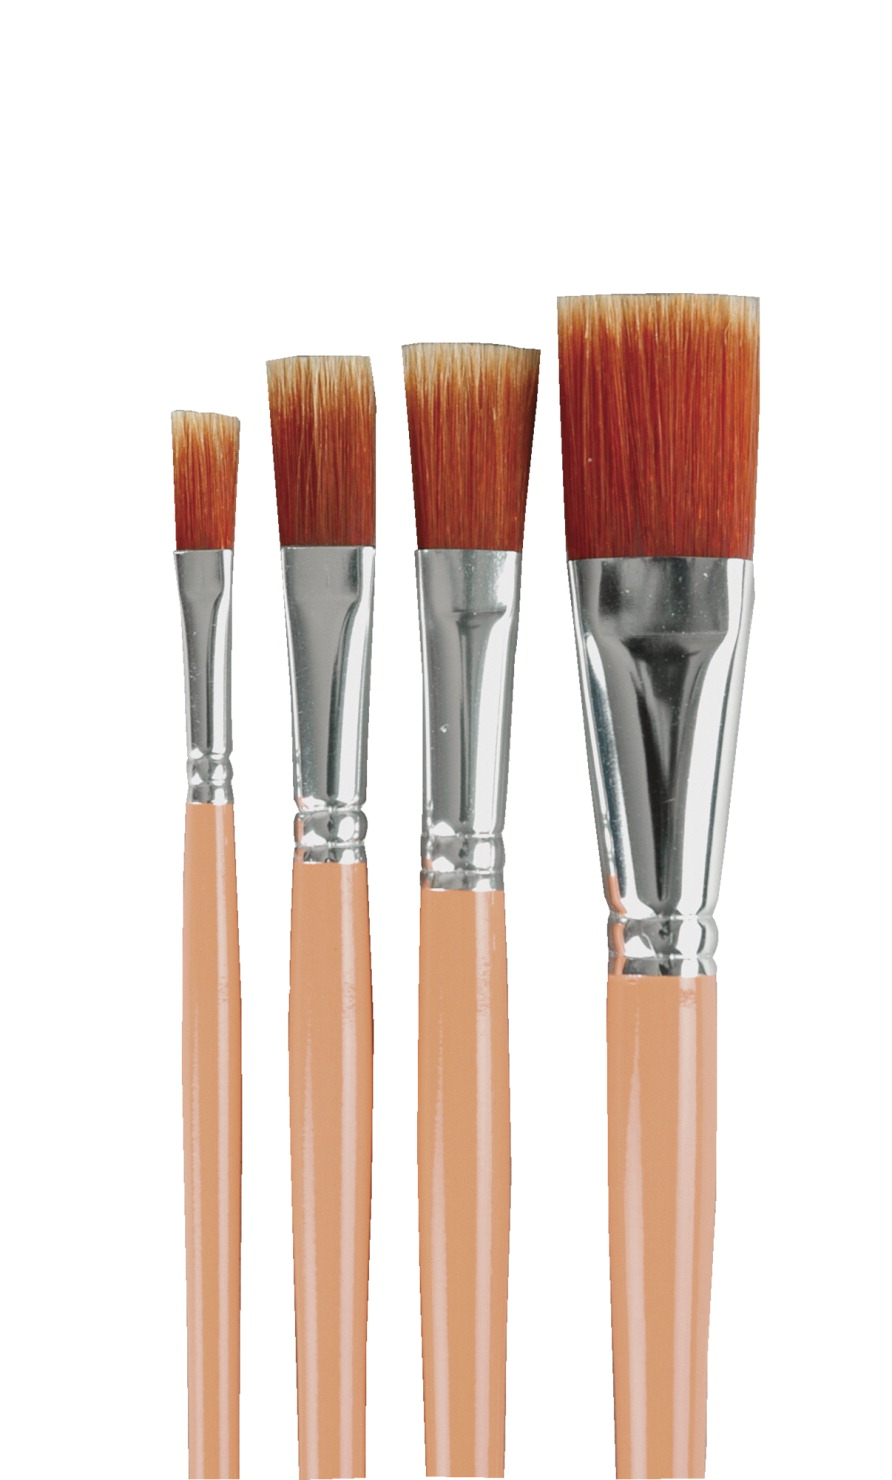 Sax Golden Acrylic Astro Flex Easel Brushes, Assorted Sizes, Set of 4